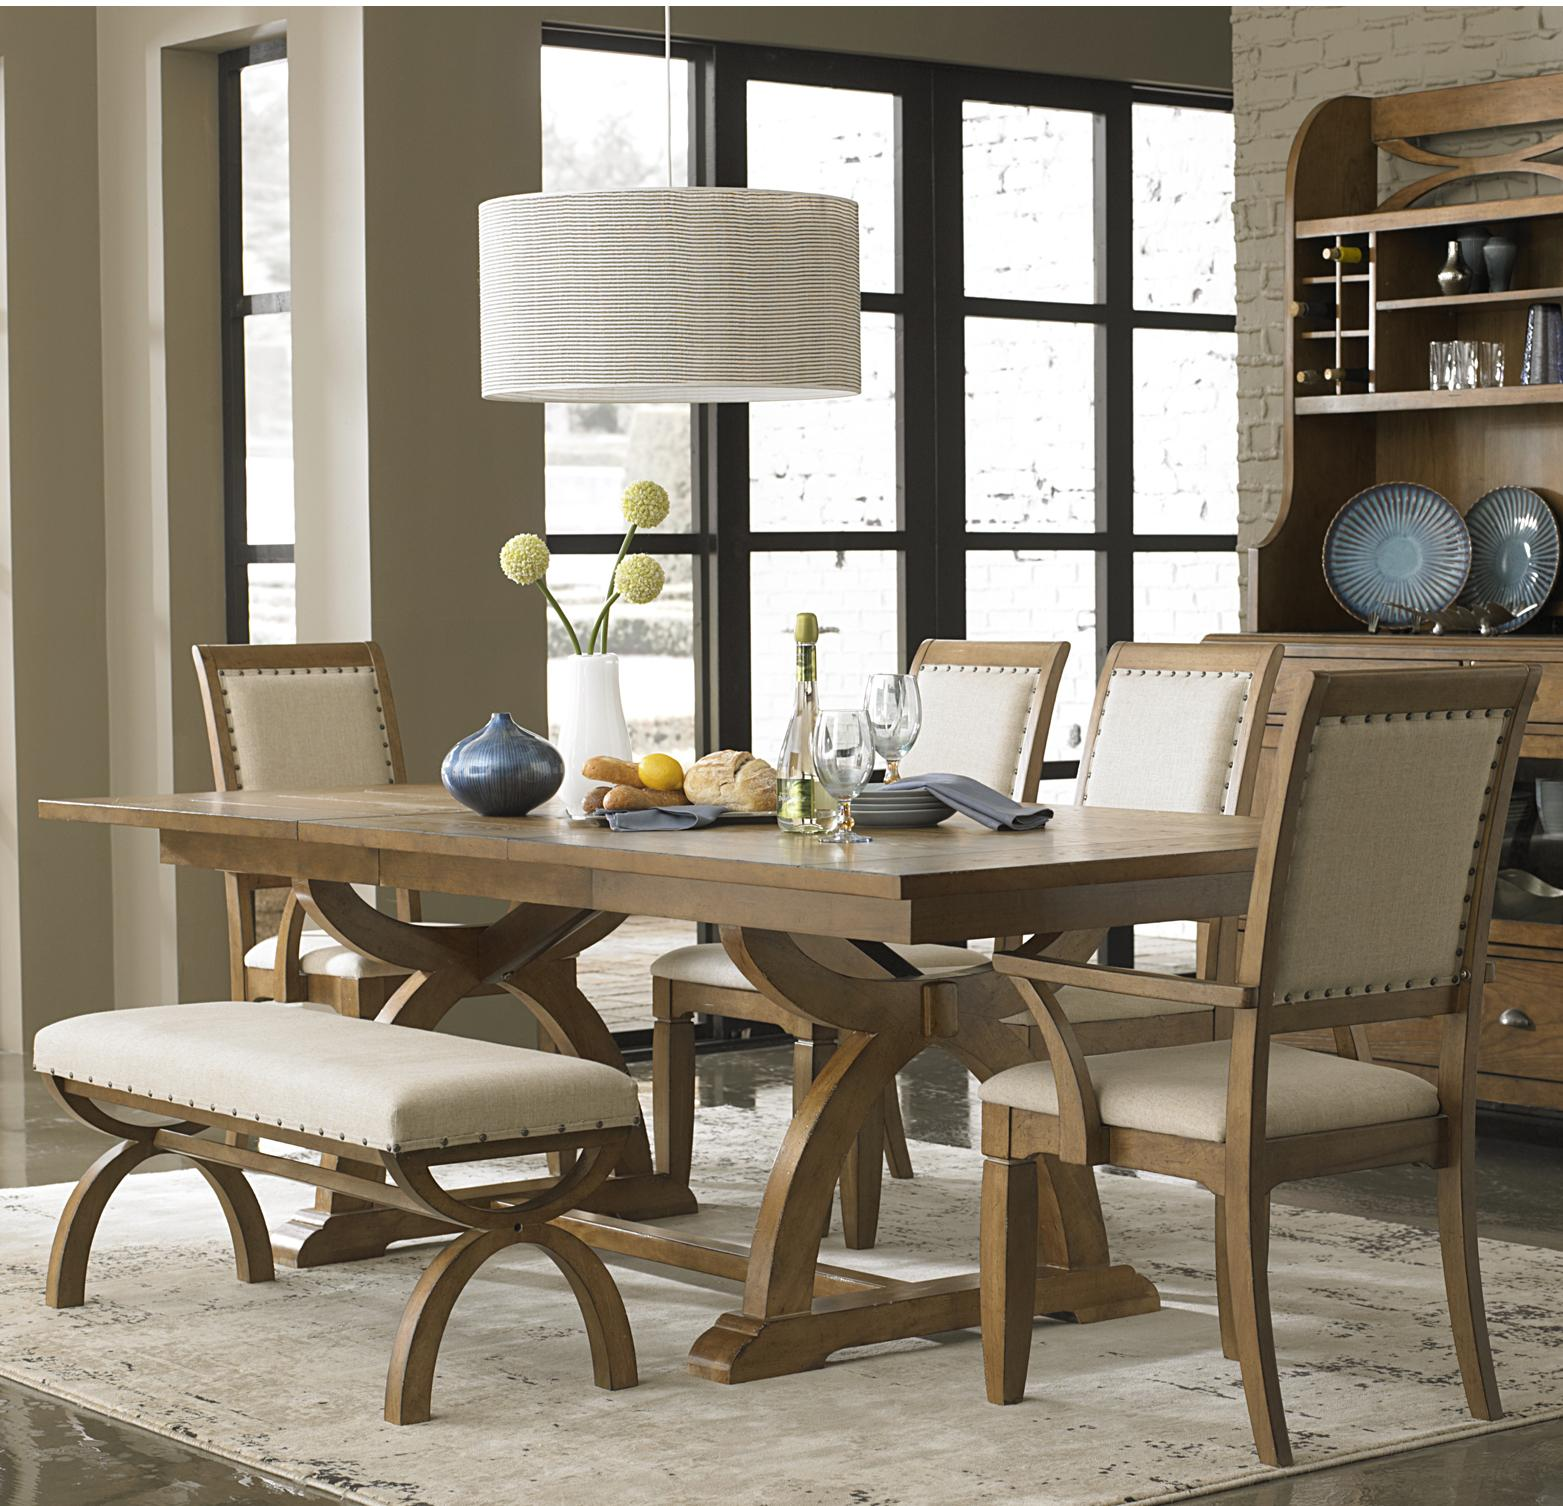 bench for kitchen table 6 Piece Trestle Table Set with 4 Upholstered Chairs Dining Bench